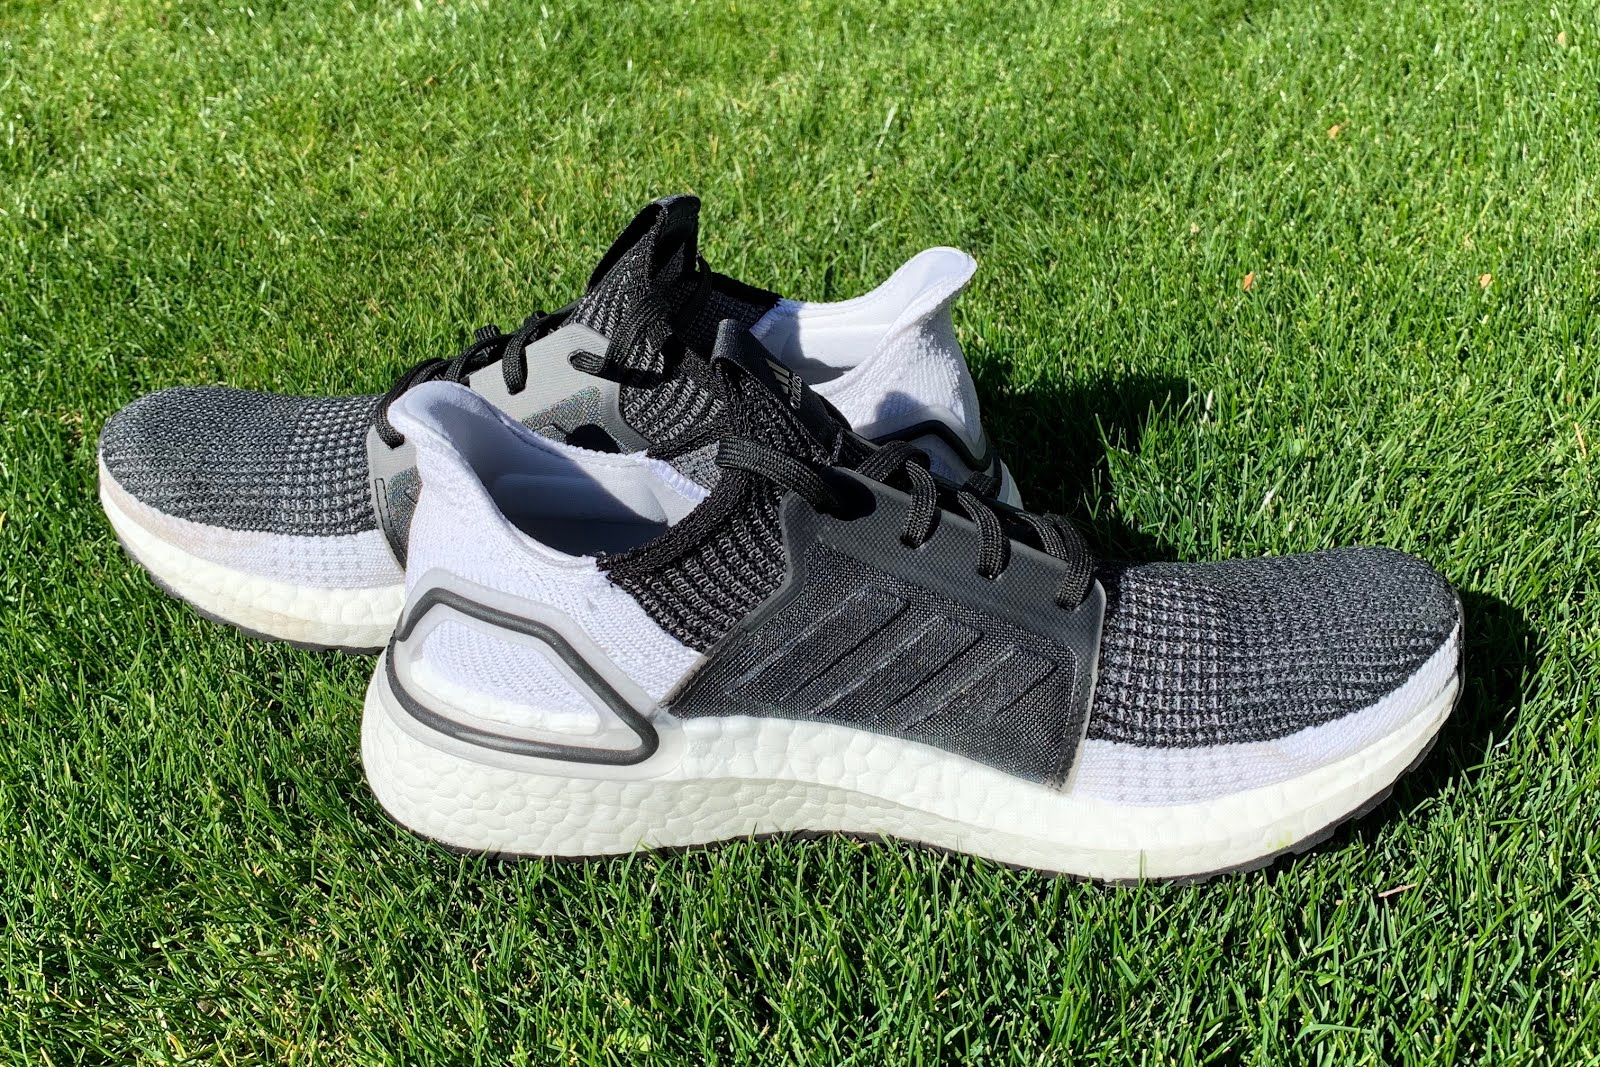 3c1768ee3c007 Finally making good on the promise adidas made more than four years ago  (when they called the original Ultra Boost their most cushioned shoe ...